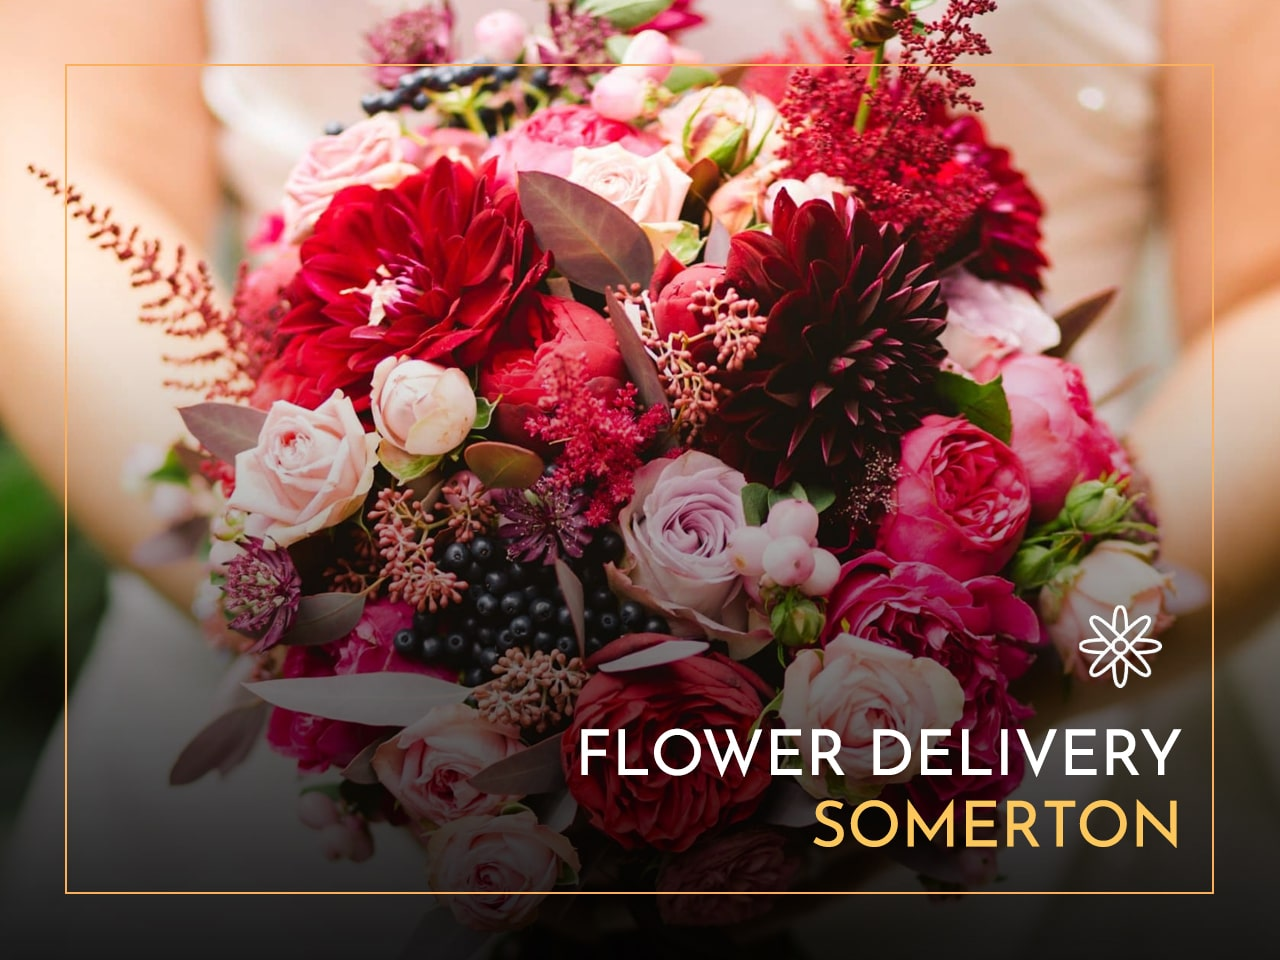 Flower Delivery Somerton